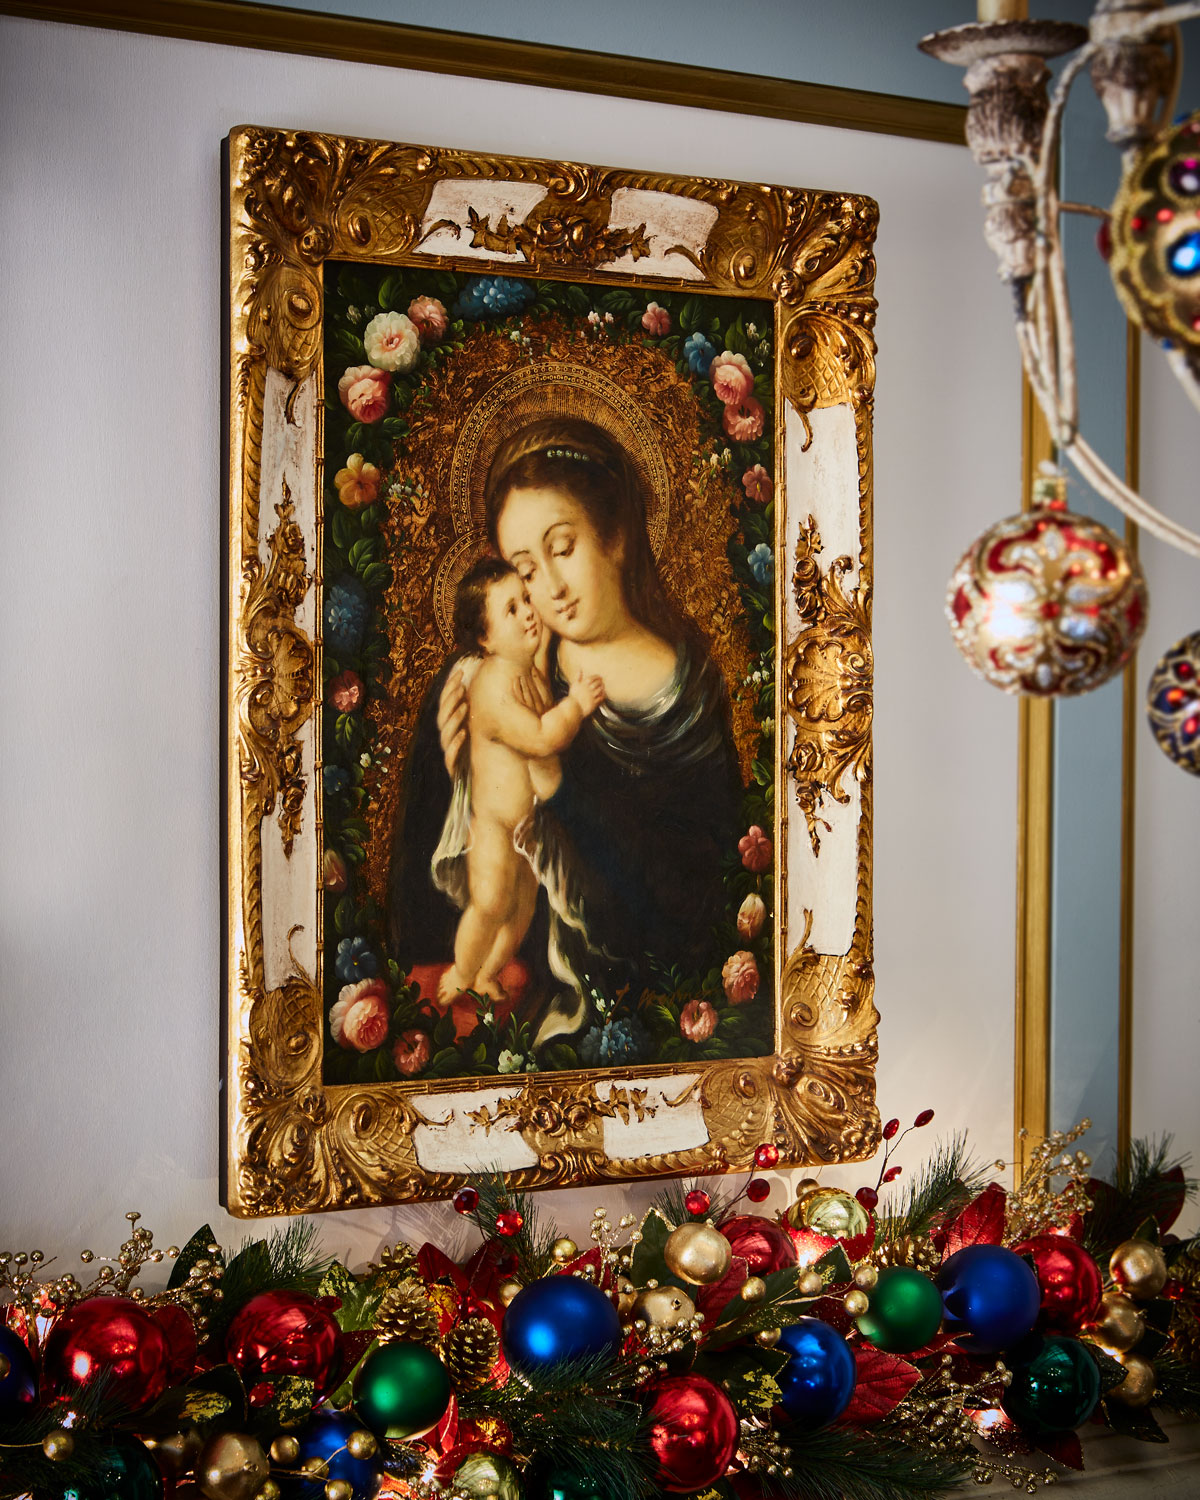 madonna with child christmas decor art in white and gold frame